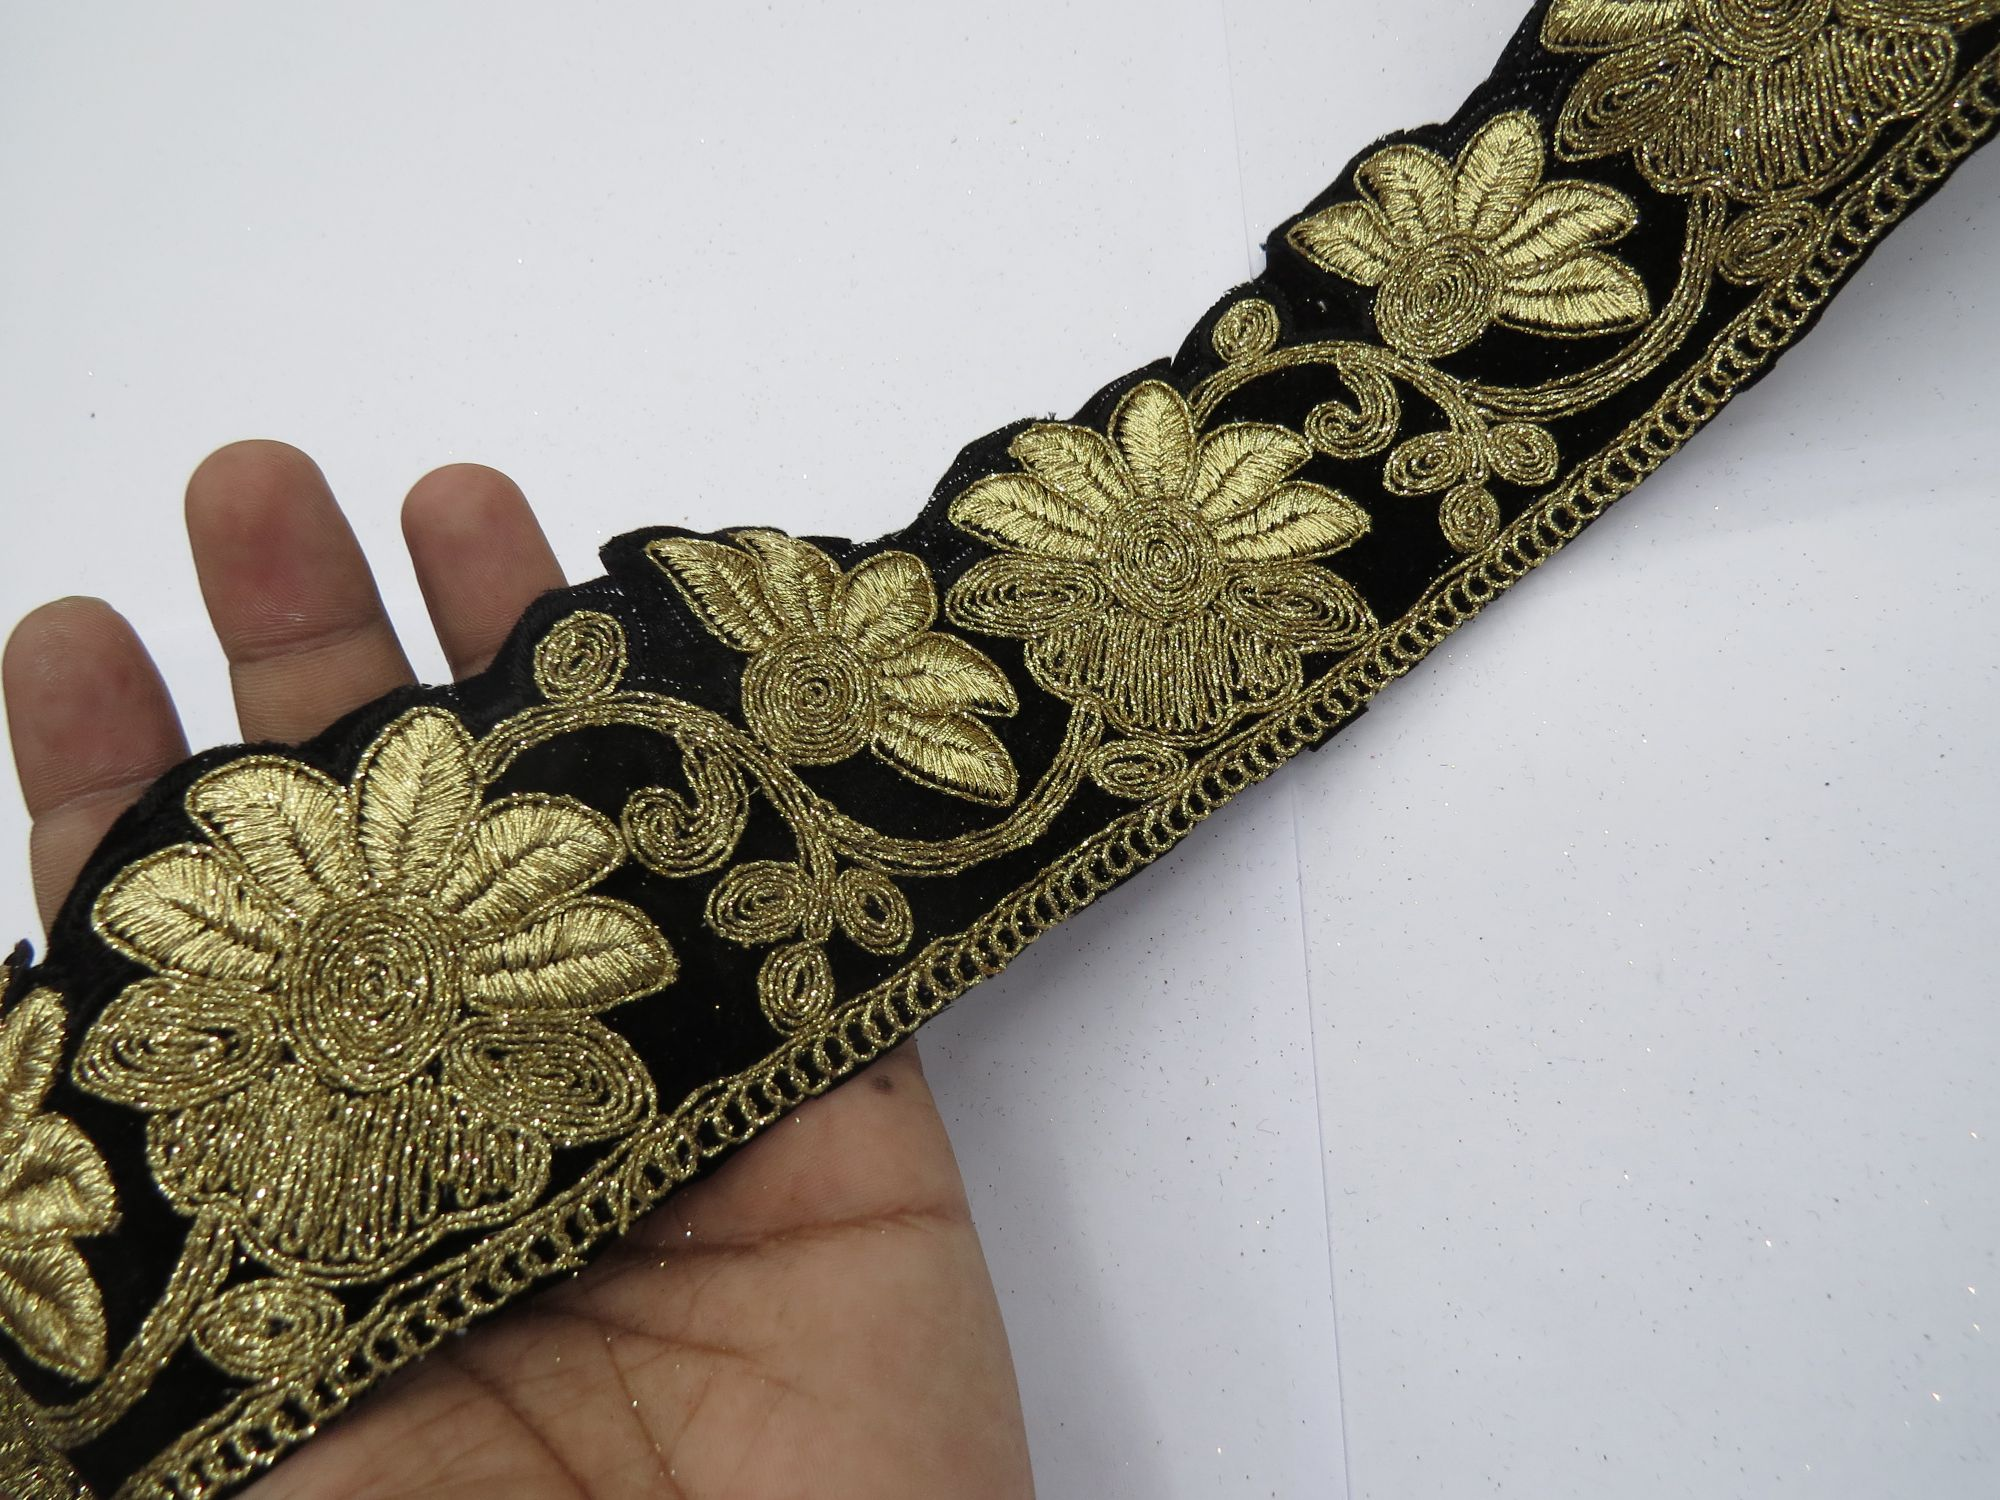 Decoractive Velvet Lace Saree Fabric Lace Gold Metallic Woven Sewing Saree Blouse Dupatta || Decorative Cushion Cover Fabric || Crafting Ribbon